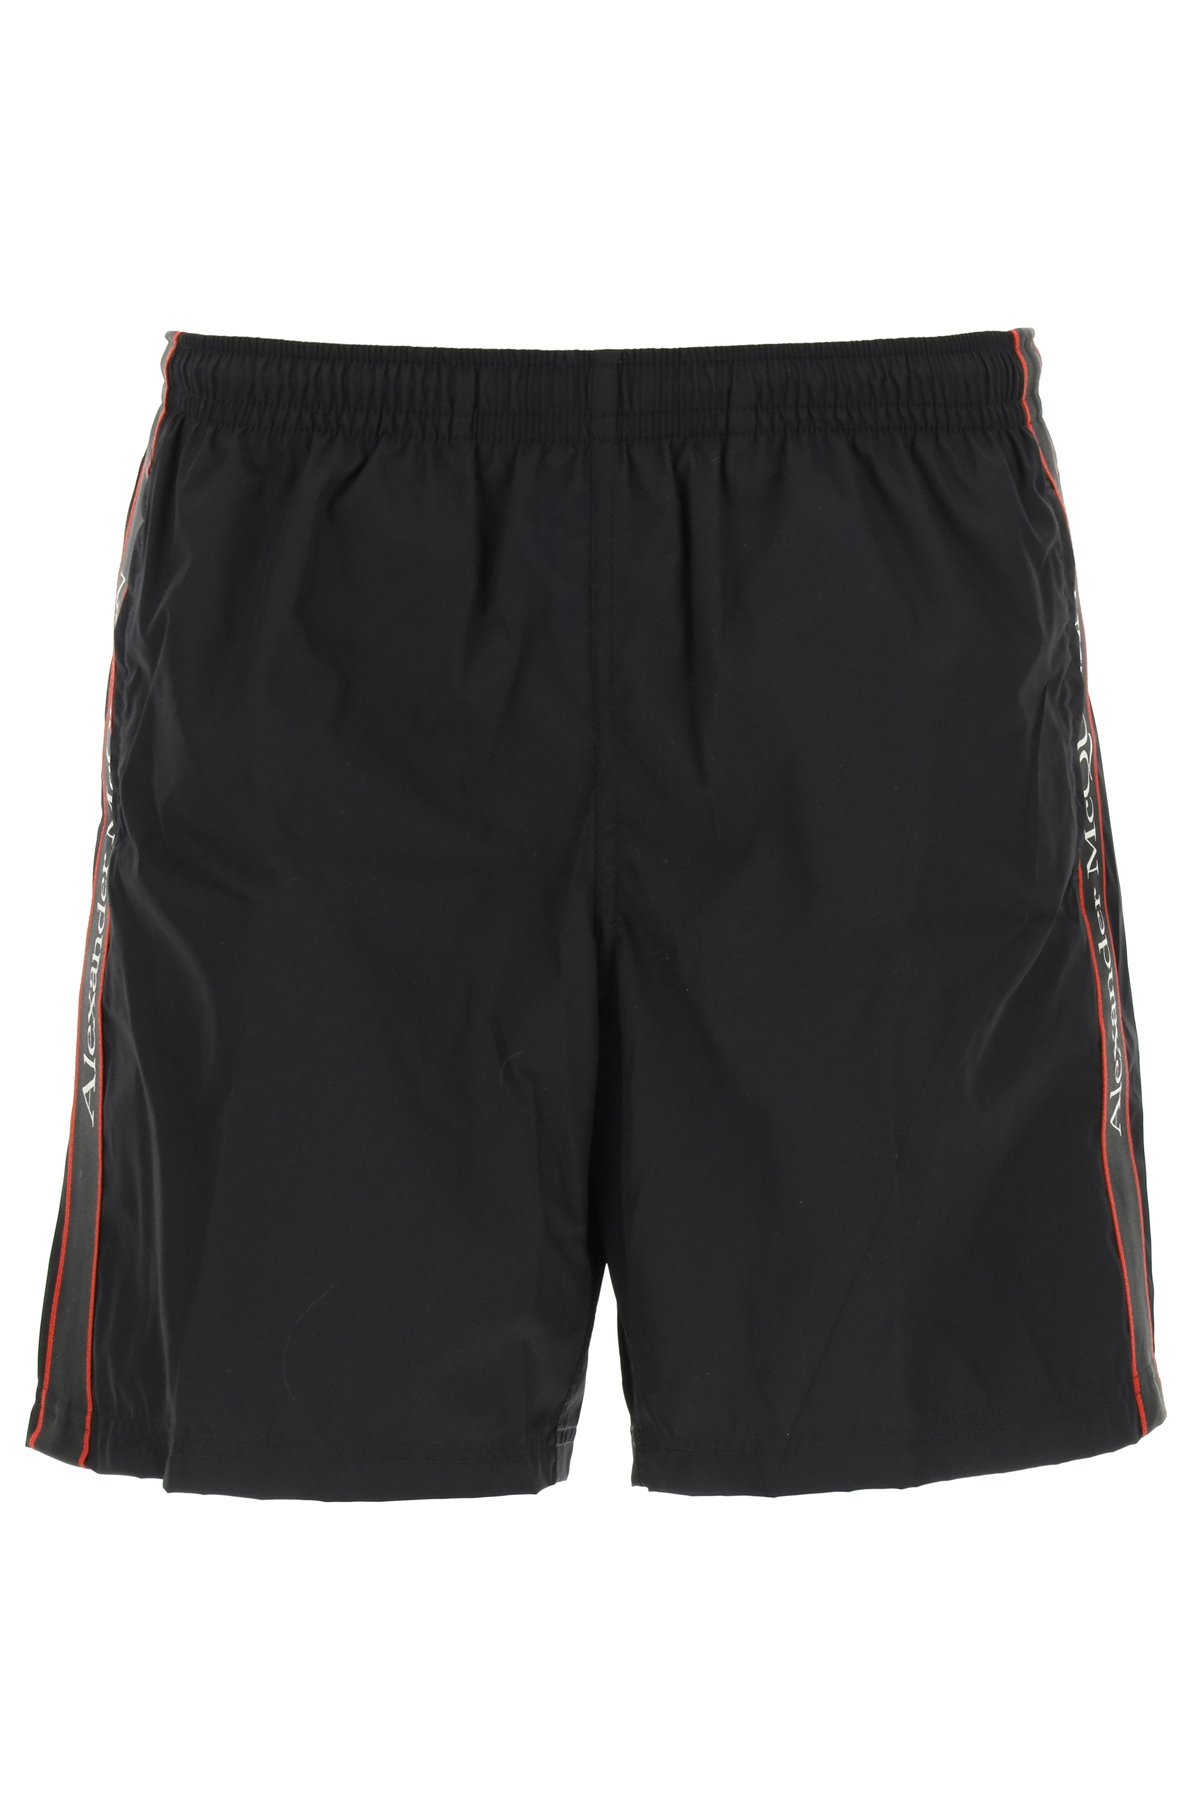 Alexander mcqueen swim trunks with logo selvedge